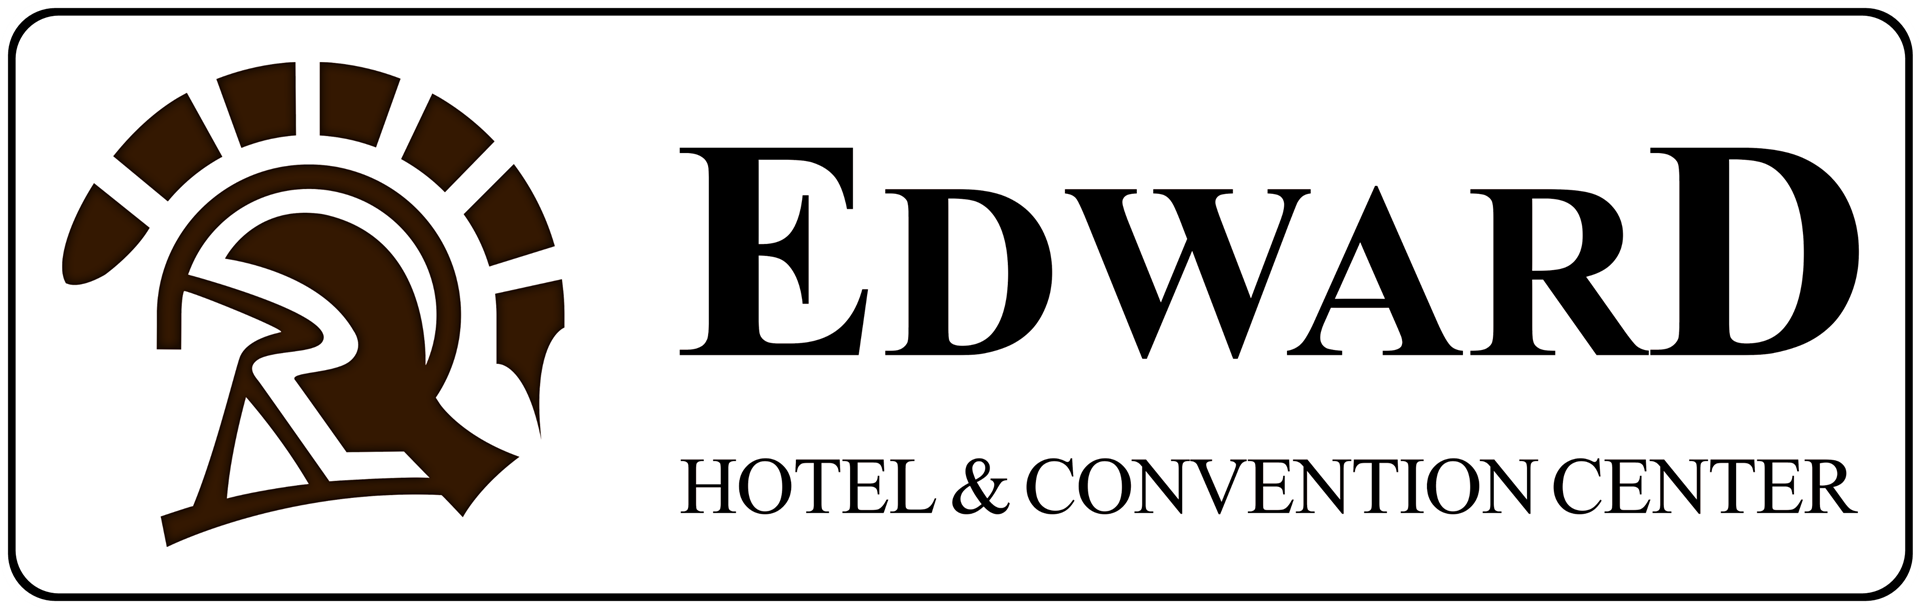 Edward Hotel & Convention Center